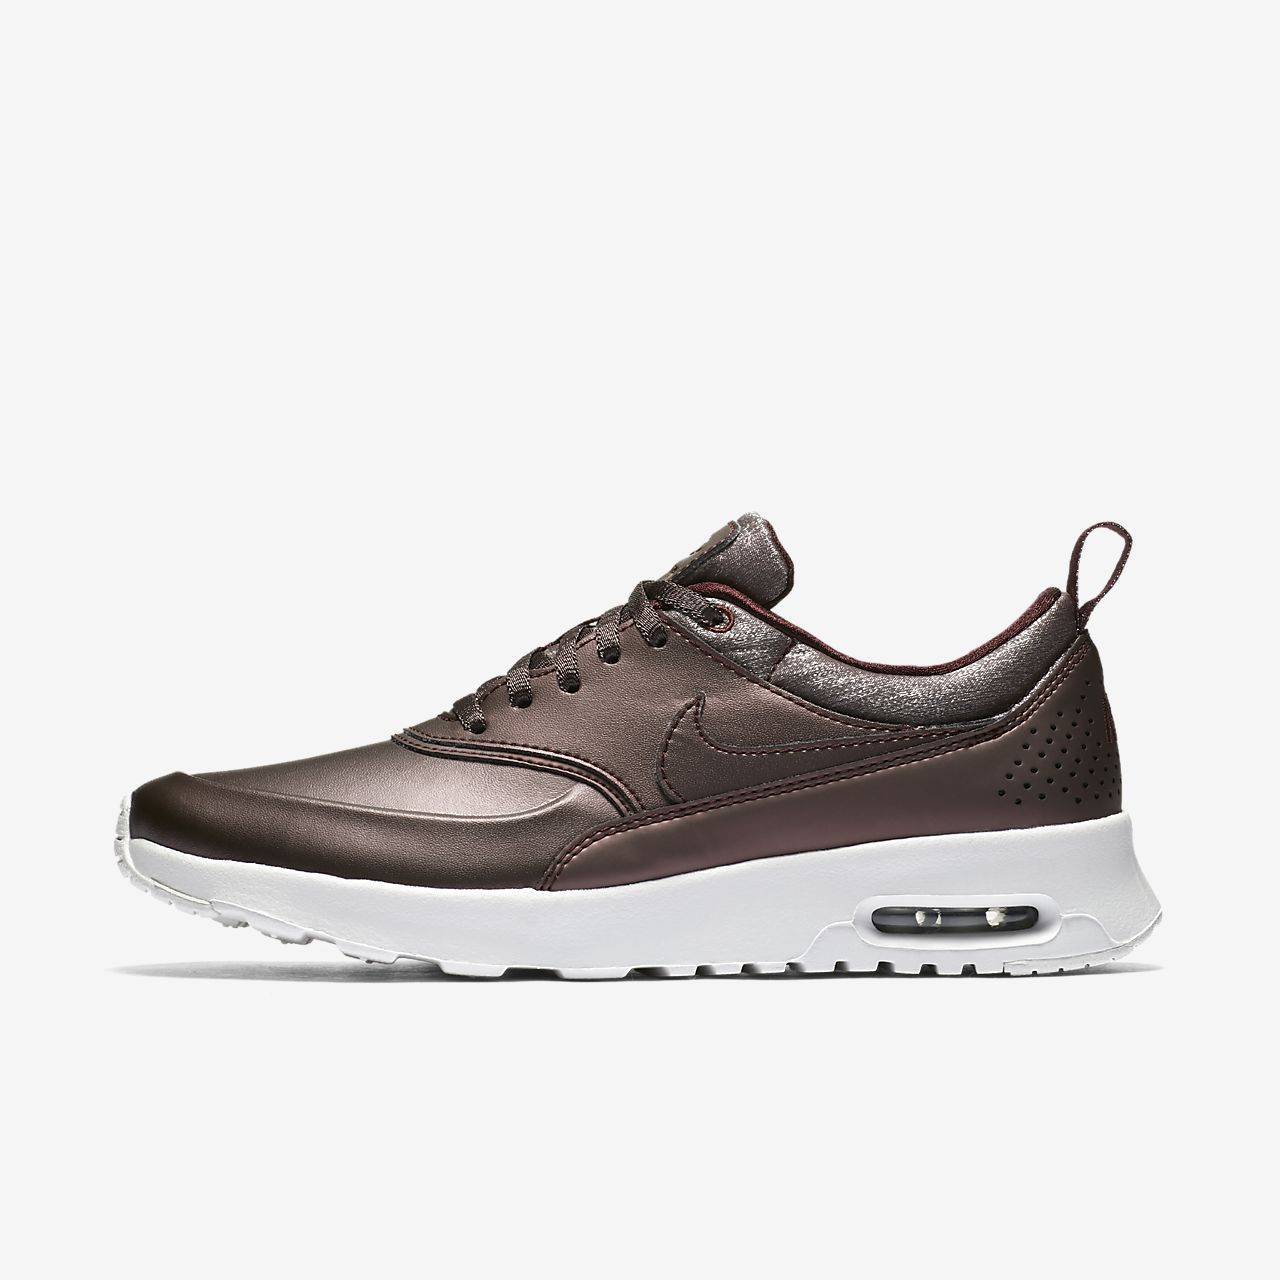 nike air max thea premium beige womens shoe